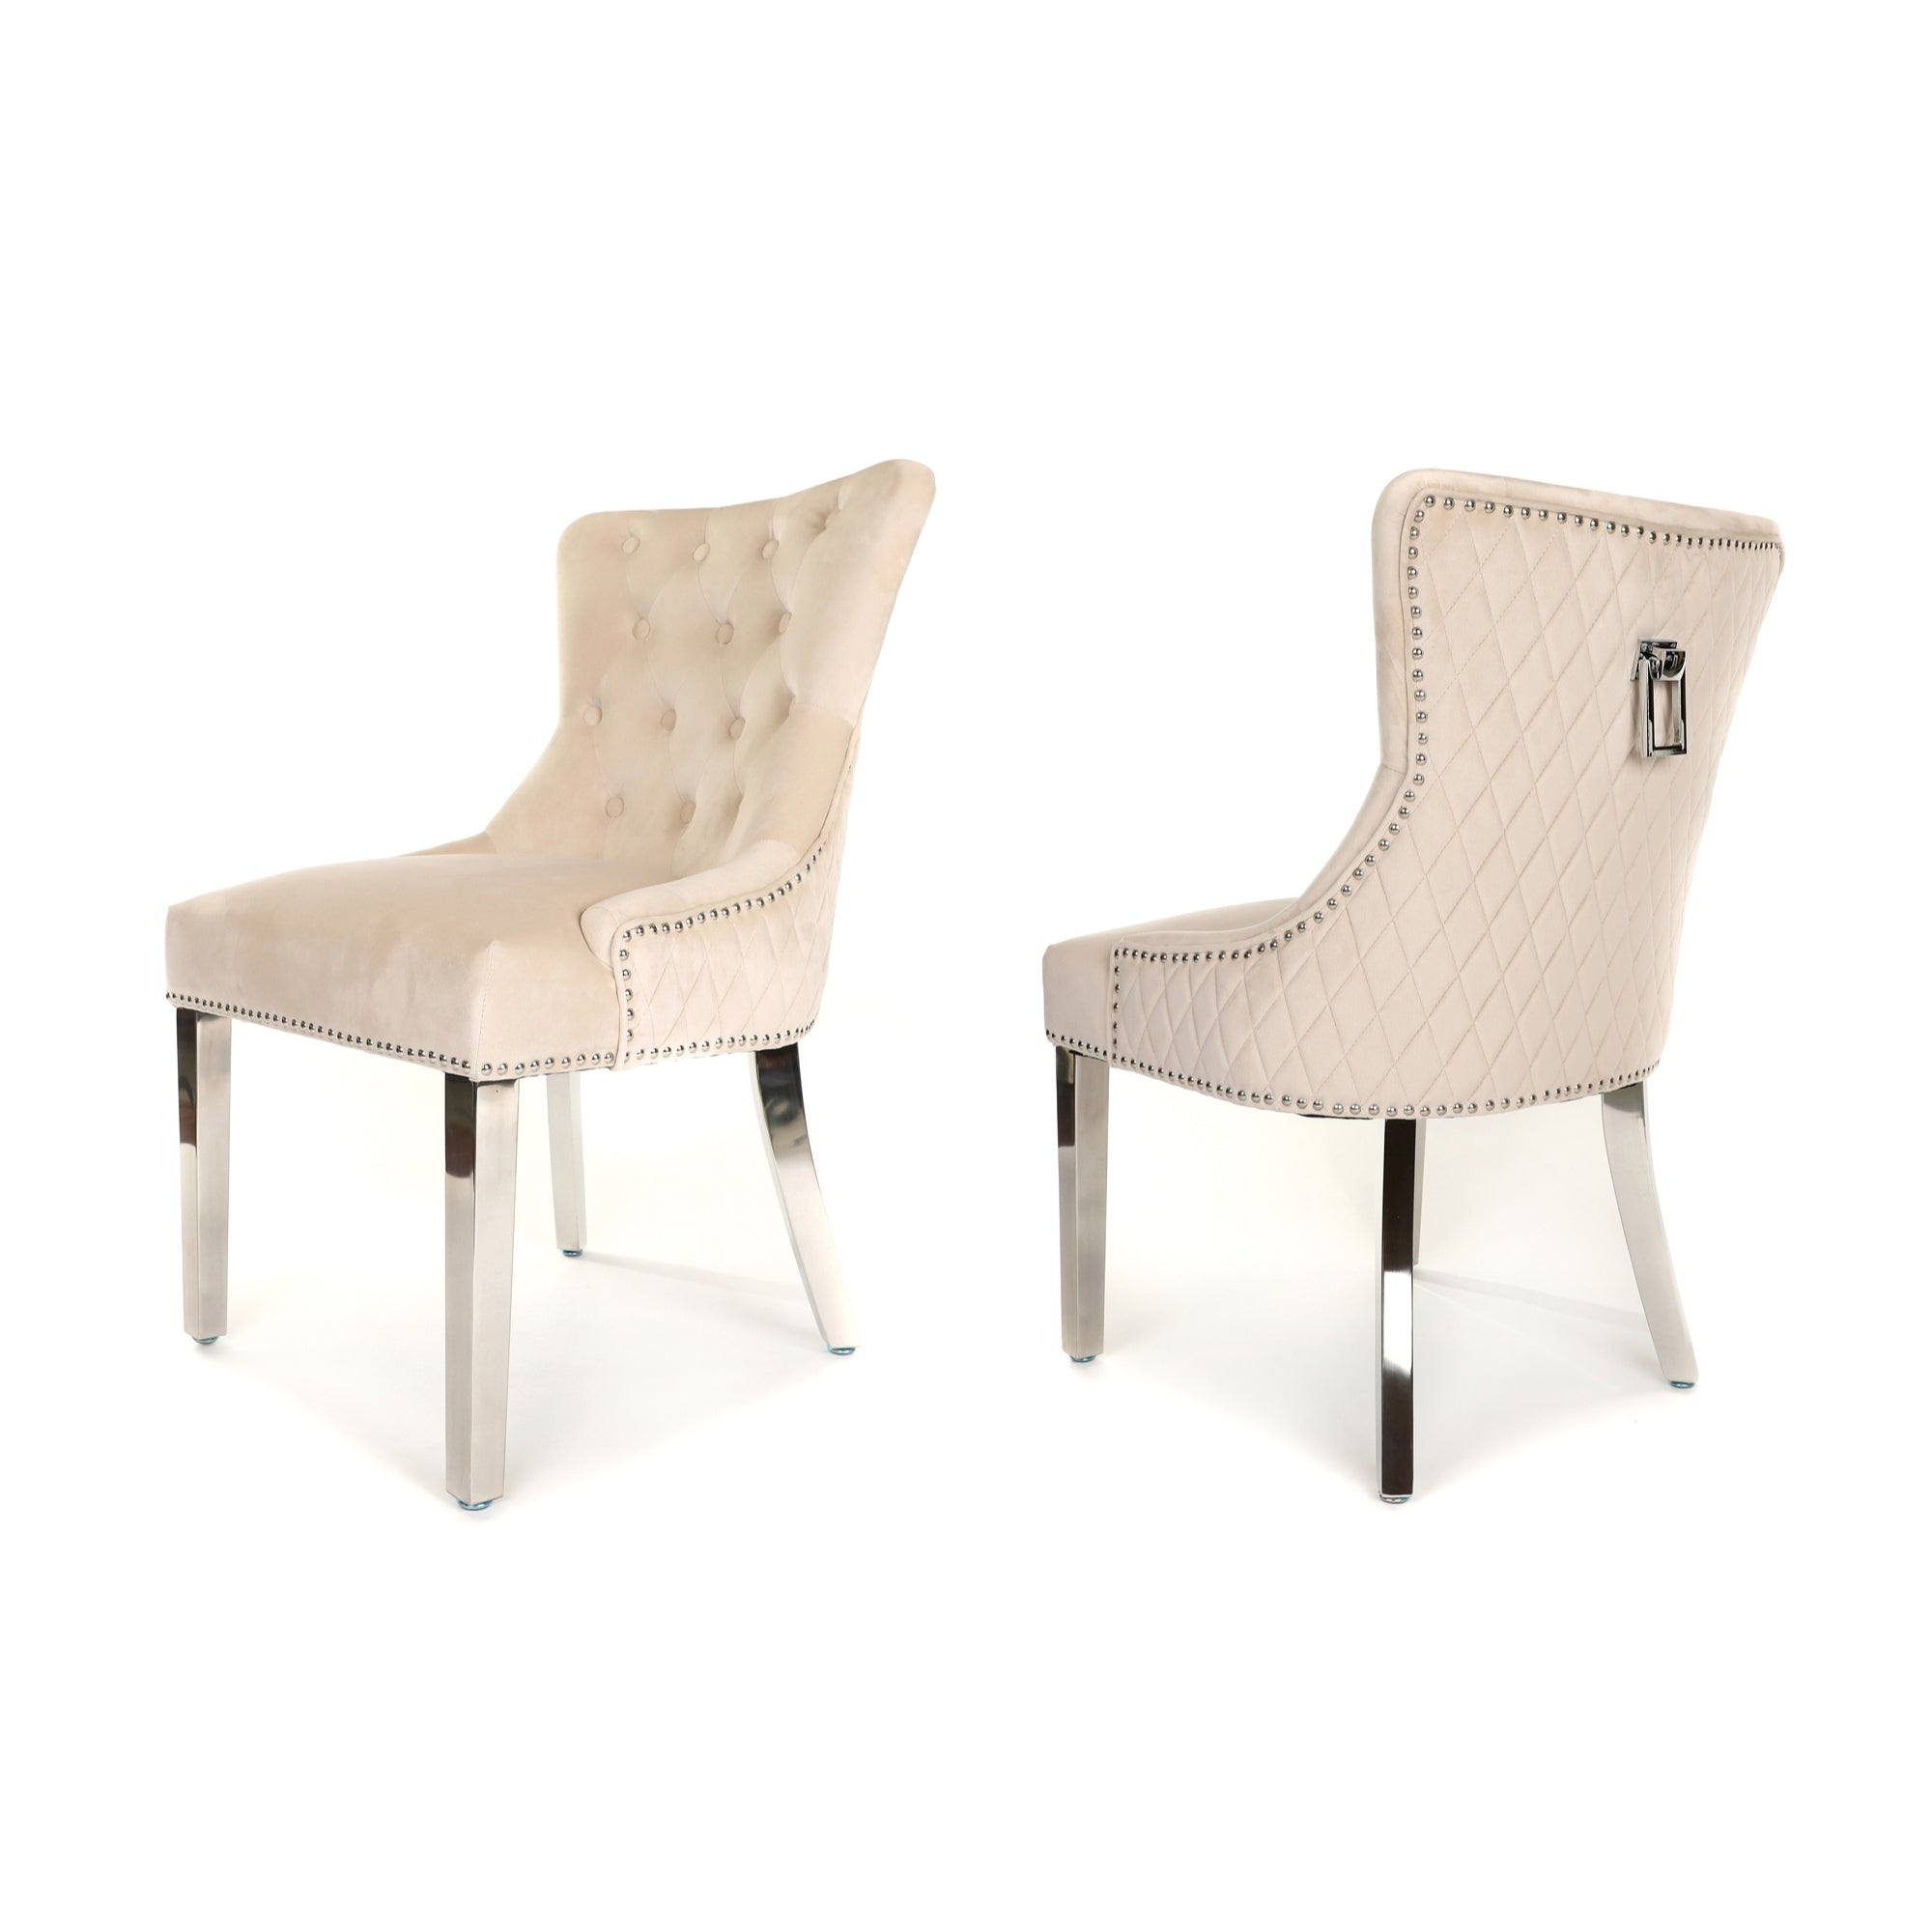 Simone Dining Chair upholstered in beige velvet with stud detail, rectangle knocker and metal legs